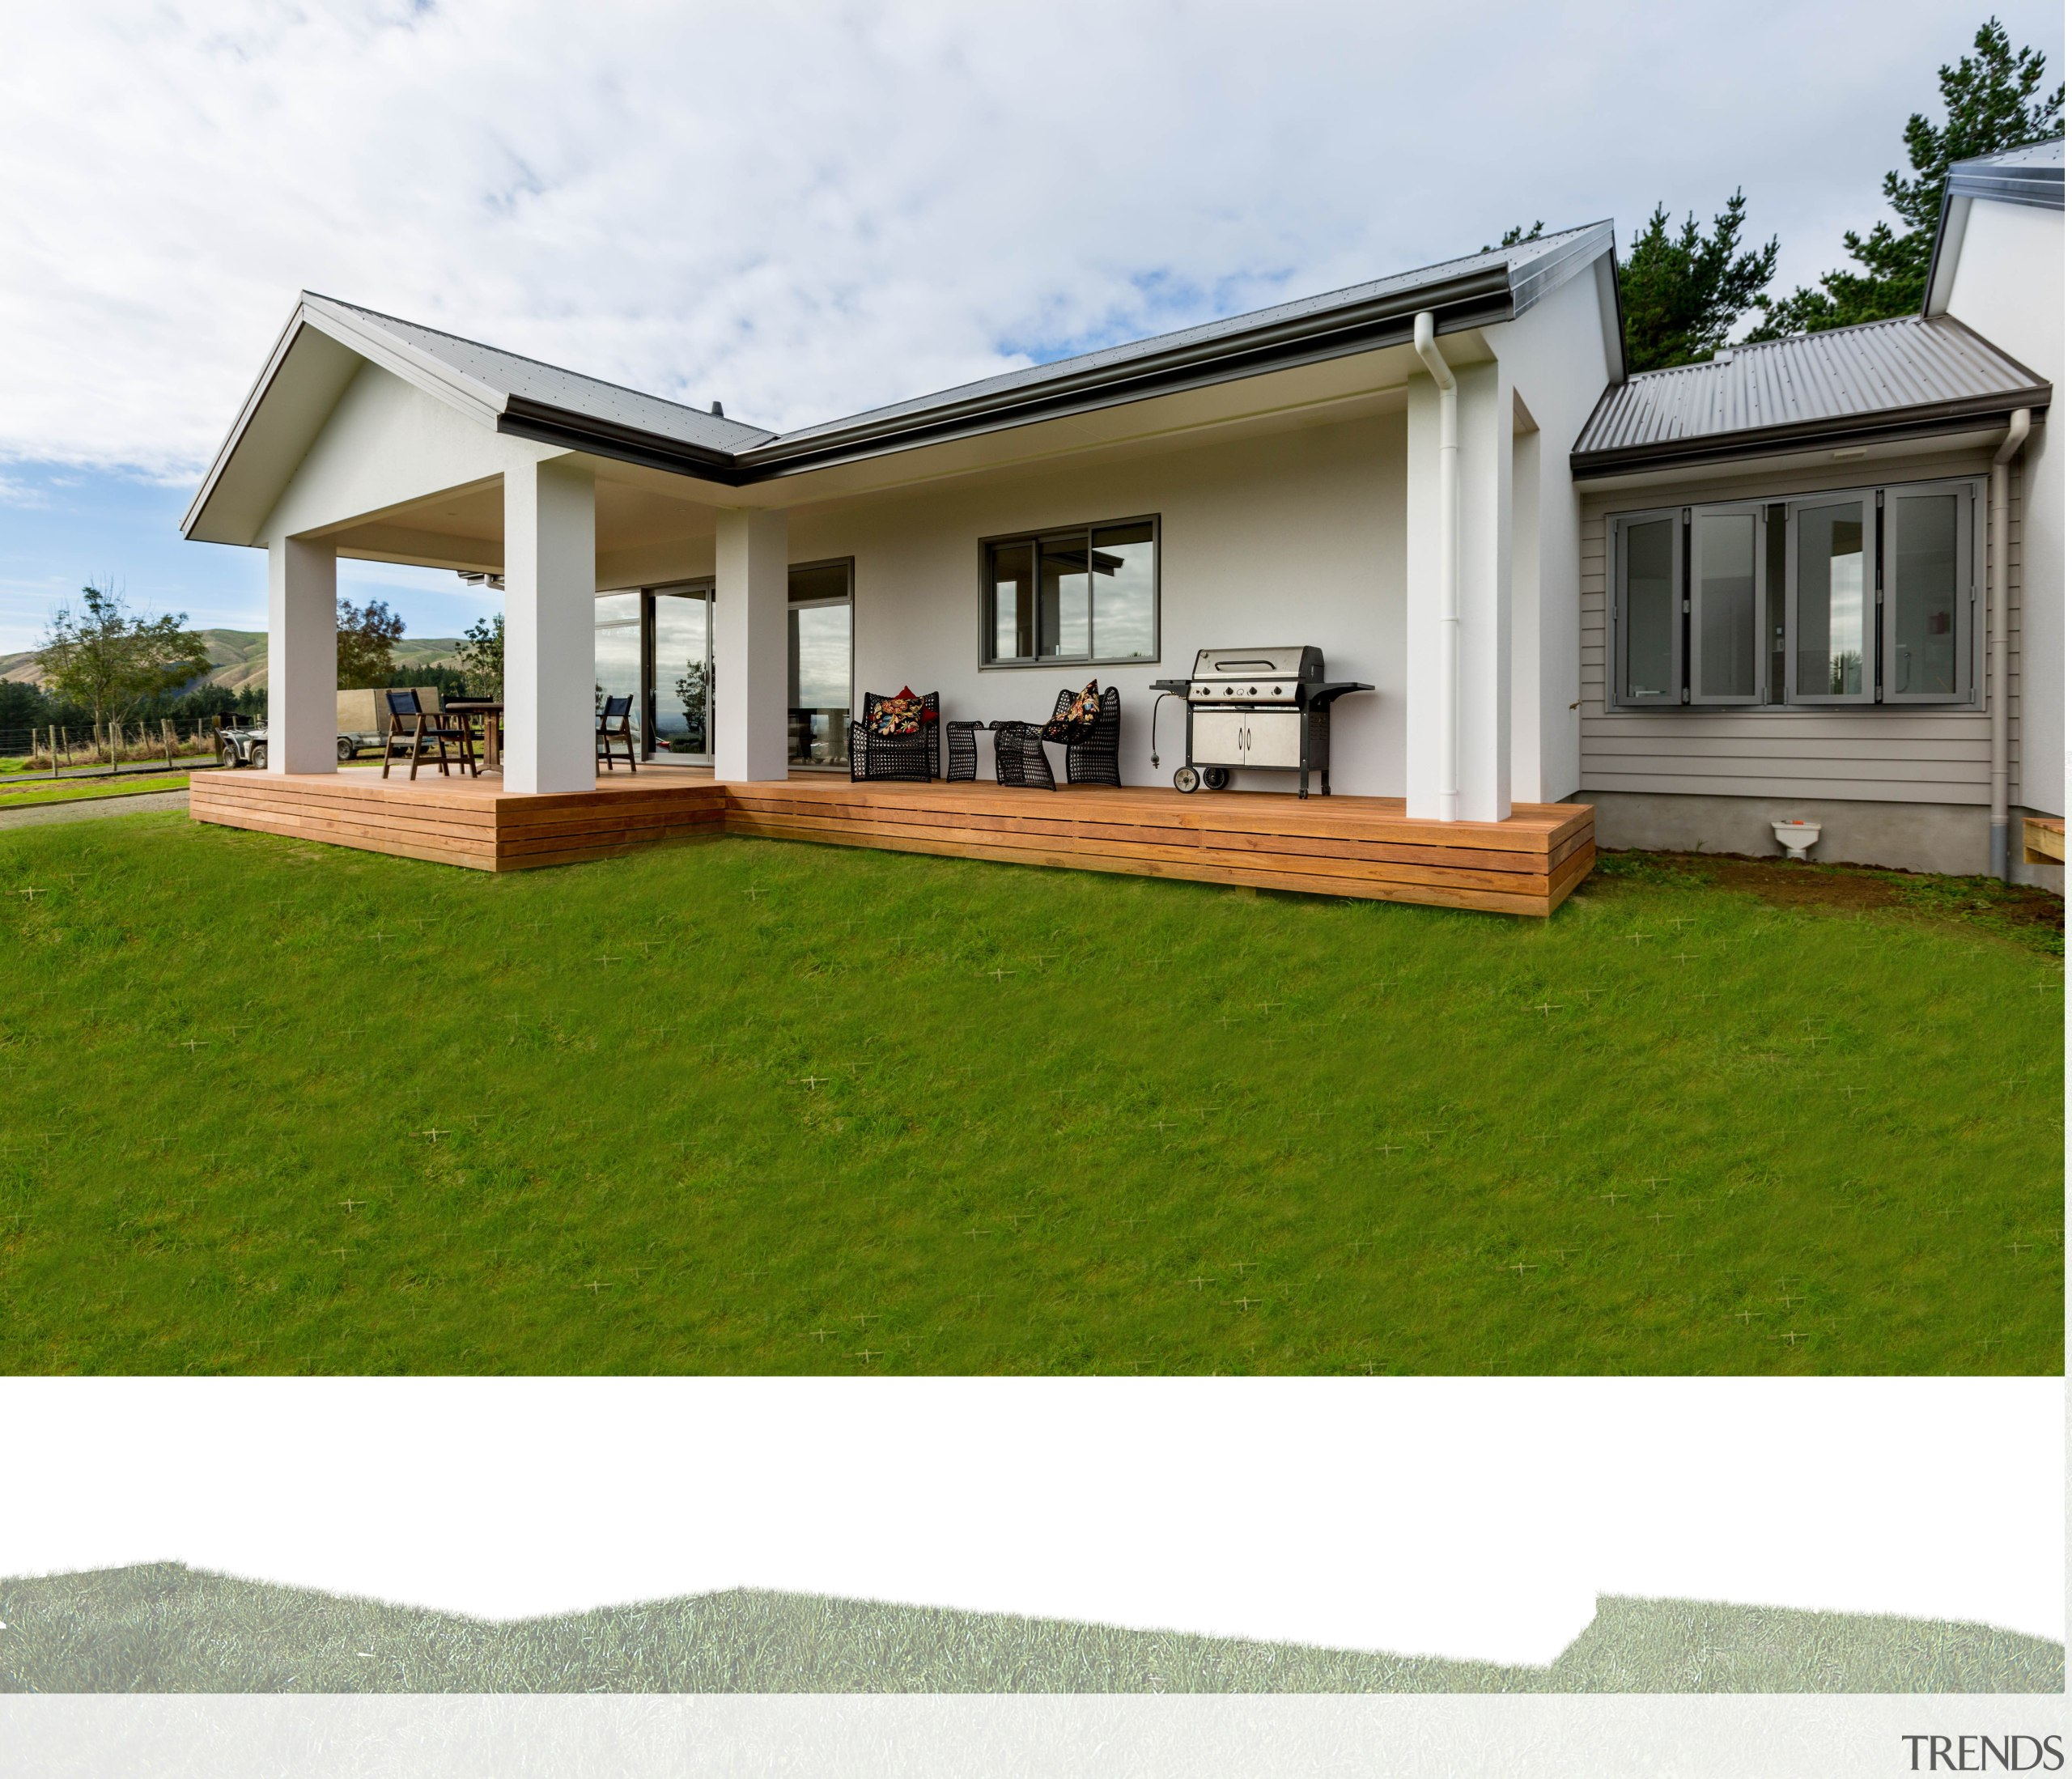 Designed and built by Fowler Homes Manawatu, this architecture, backyard, elevation, estate, facade, grass, home, house, land lot, lawn, property, real estate, residential area, siding, yard, white, brown